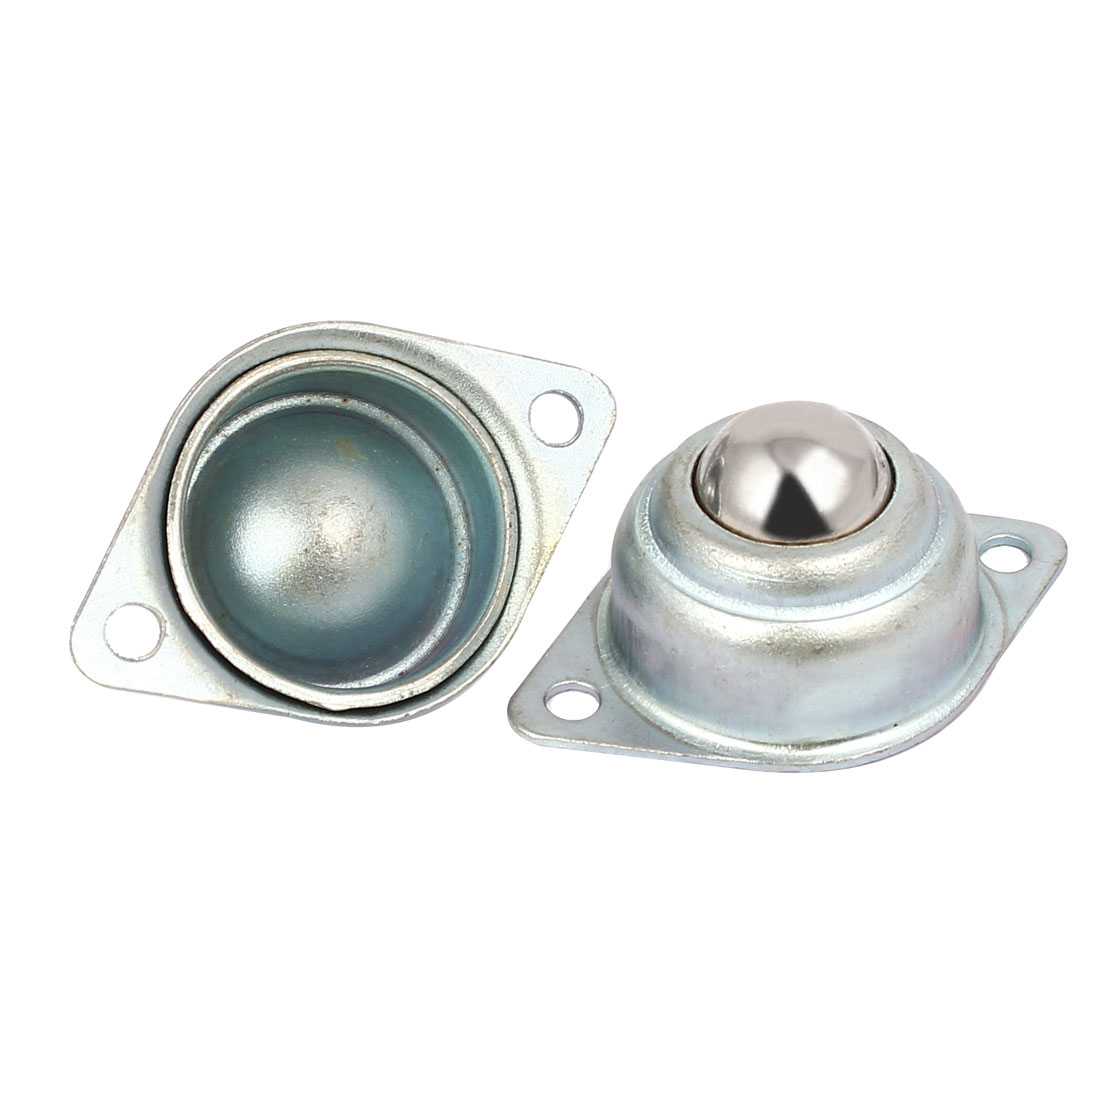 Metal Flange Mounted Conveyor Roller Ball Bearing Transfer Unit Silver Tone 2pcs